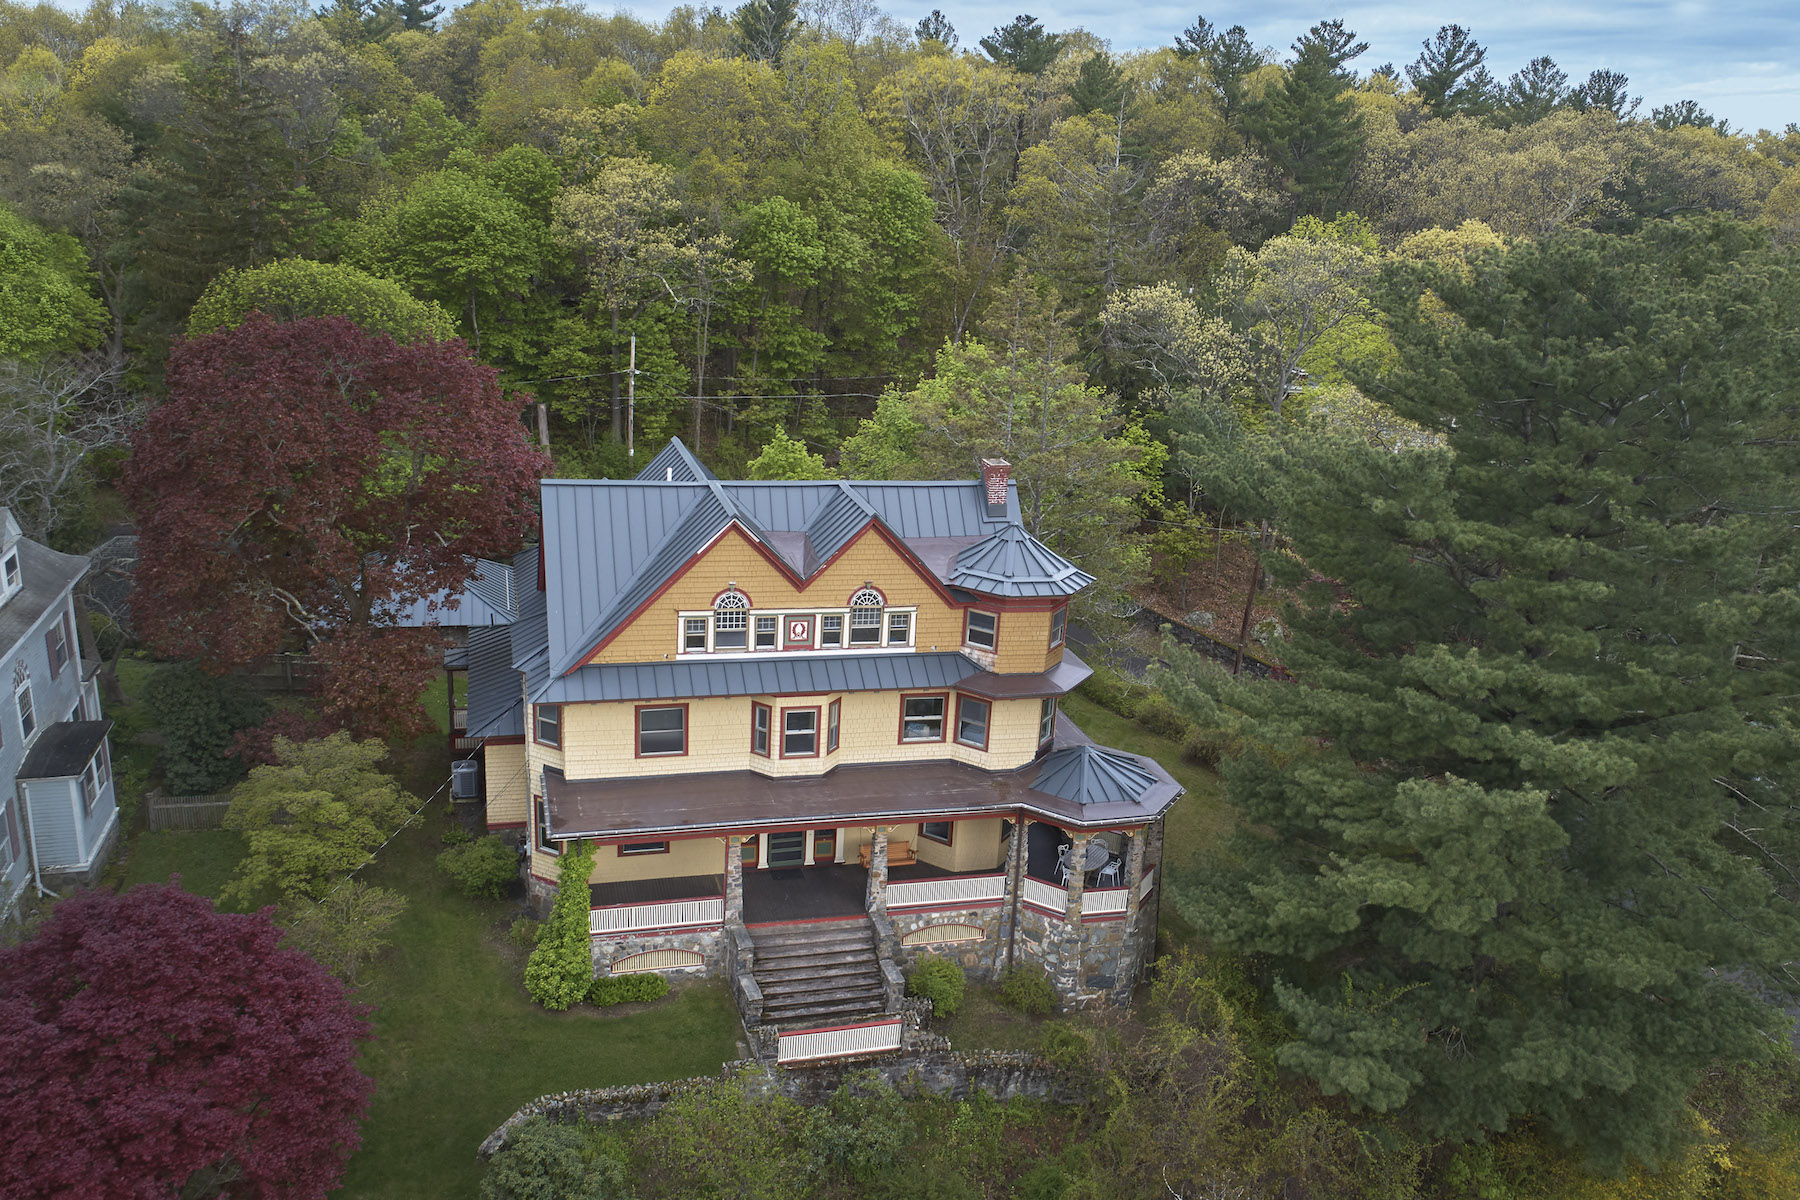 Single Family Home for Active at 46 Upland Road Melrose, Massachusetts 02176 United States